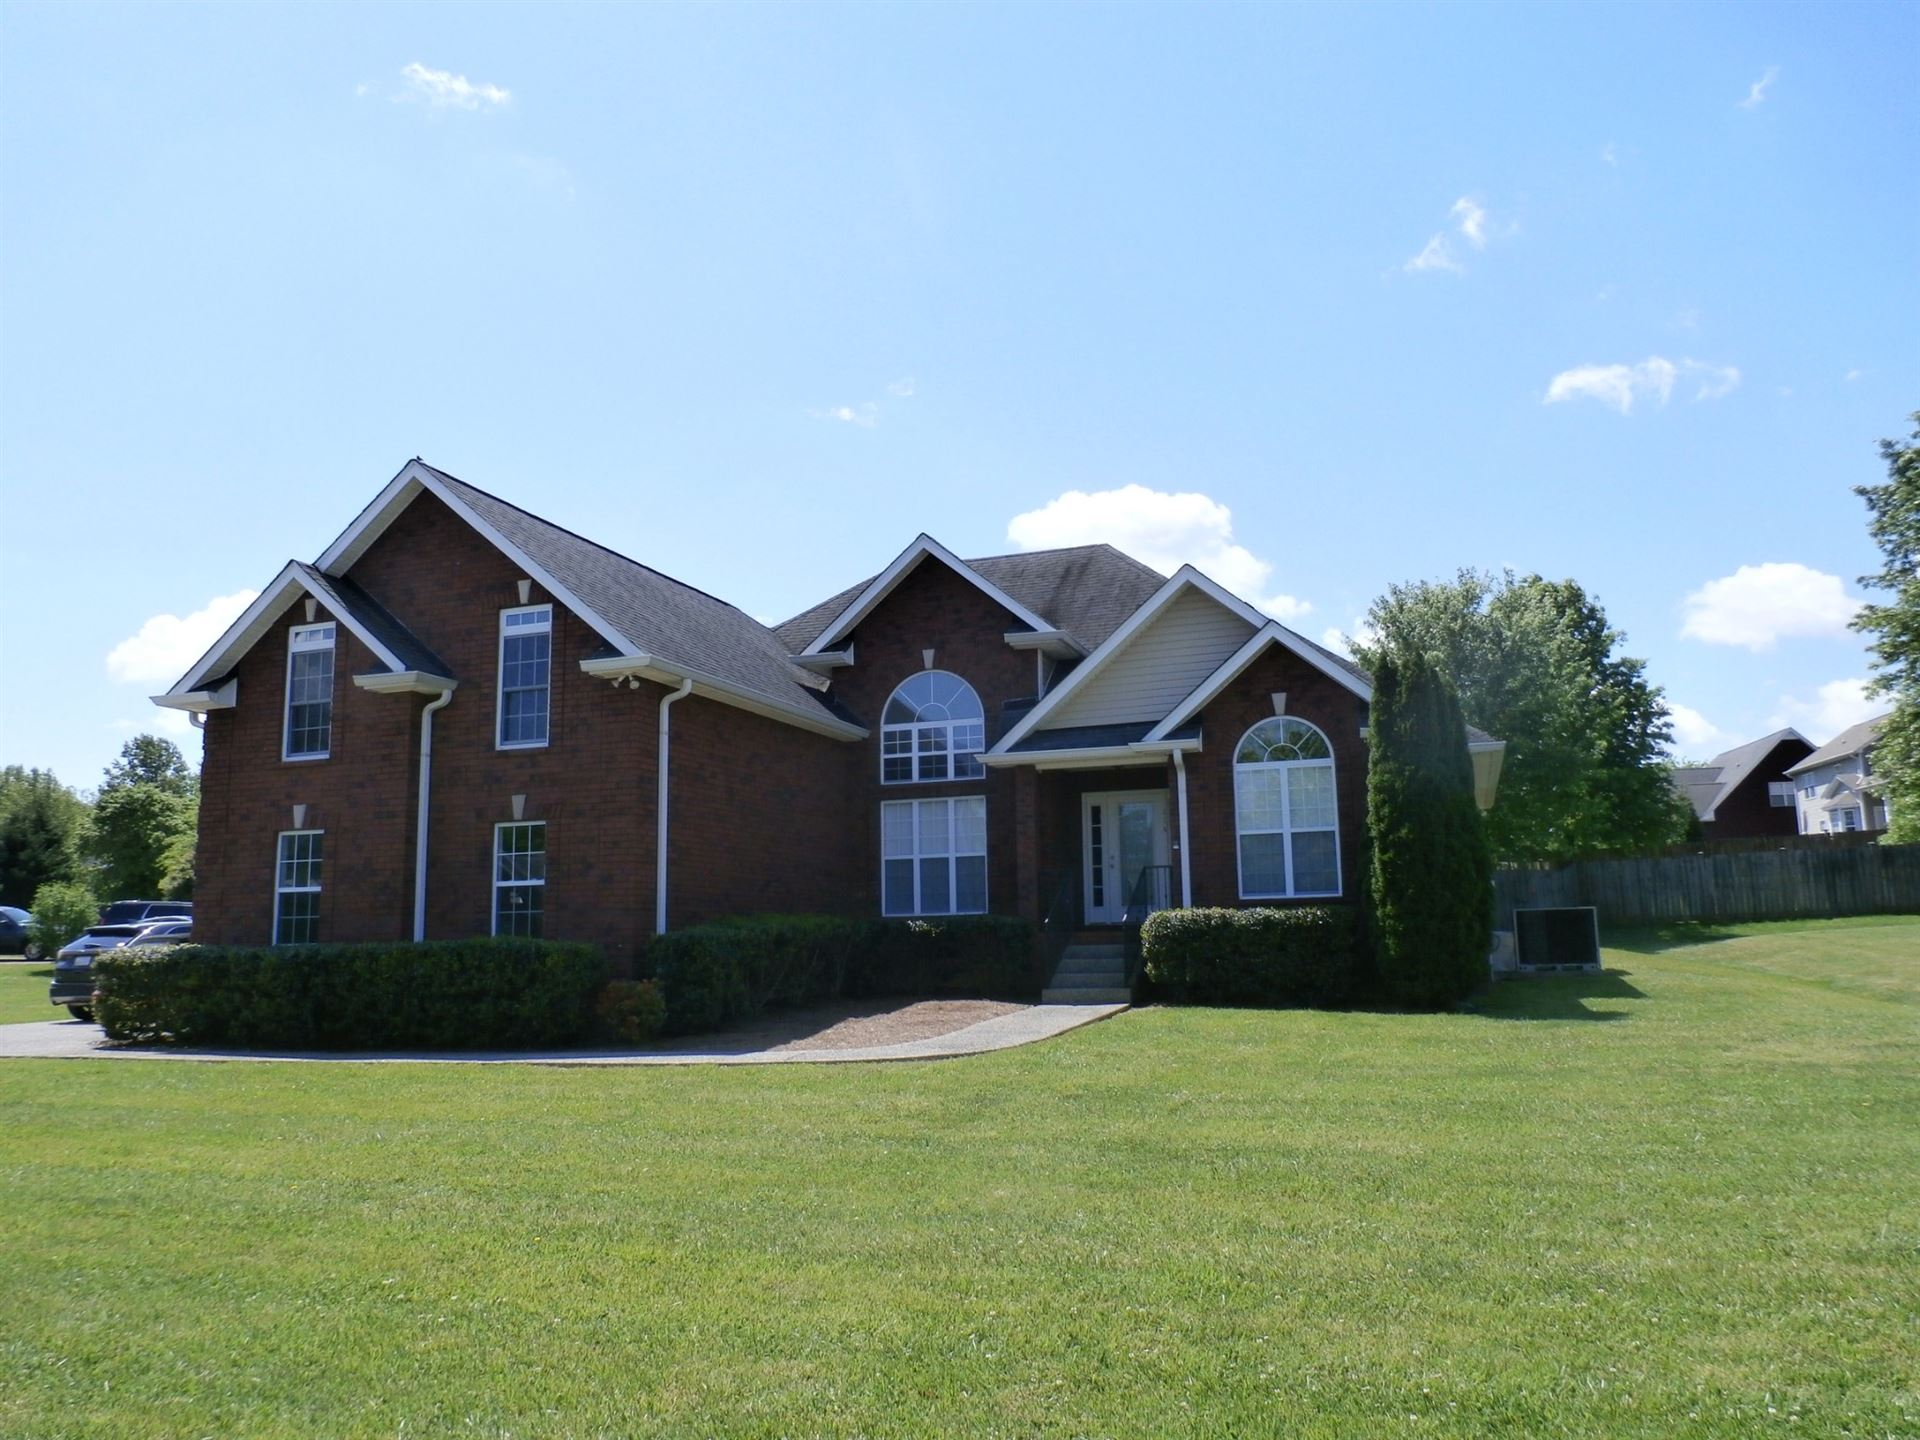 114 Brigham Ct, White House, TN 37188 - MLS#: 2251647